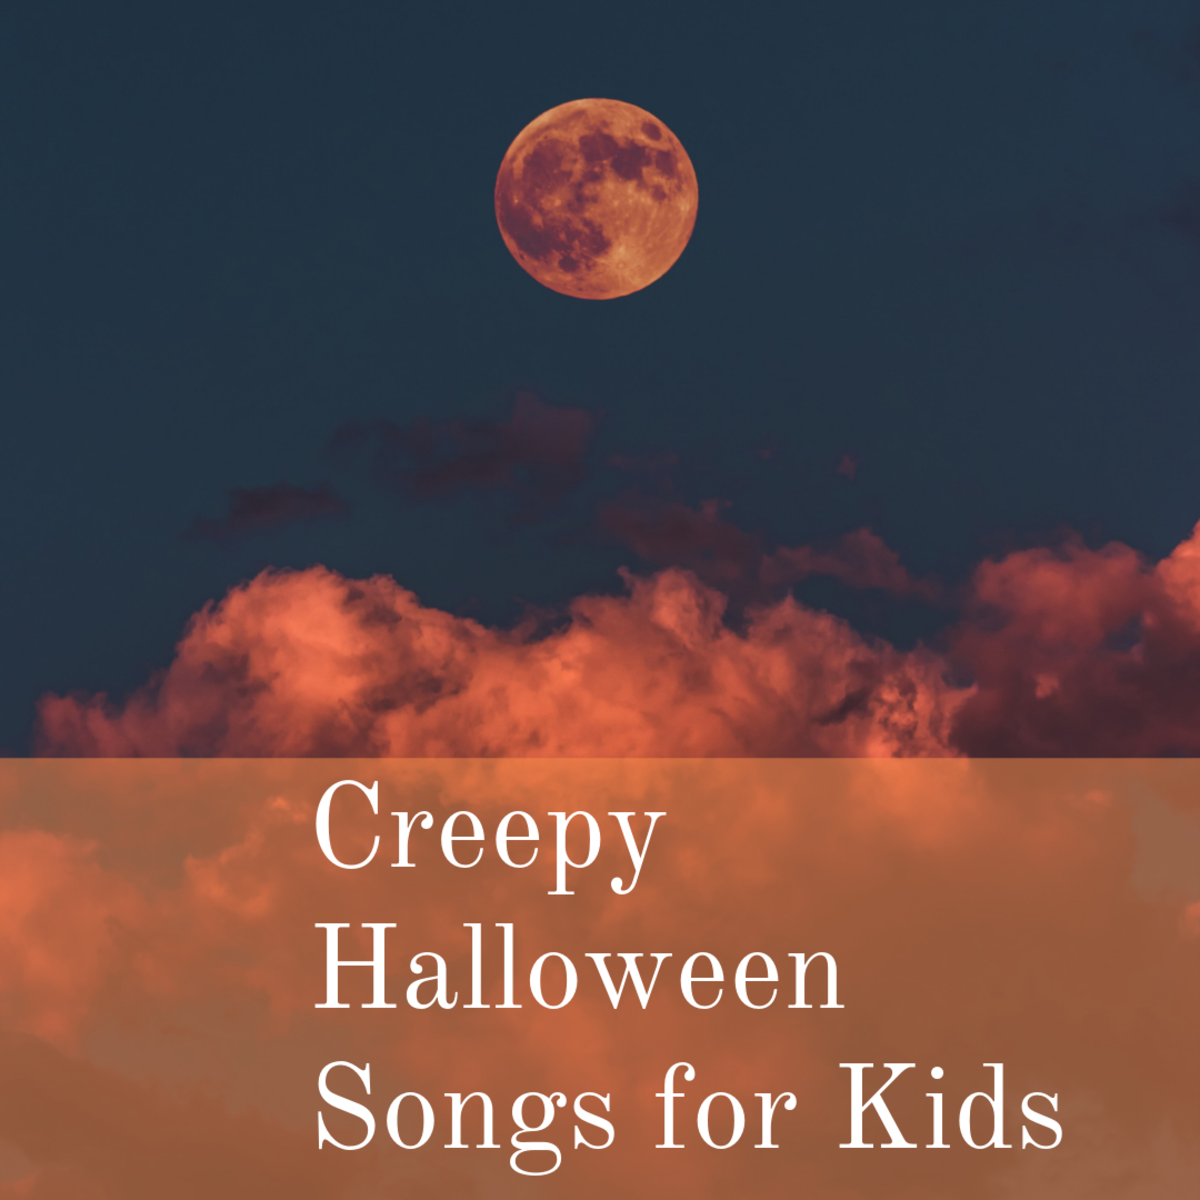 These creepy songs are great for kids!